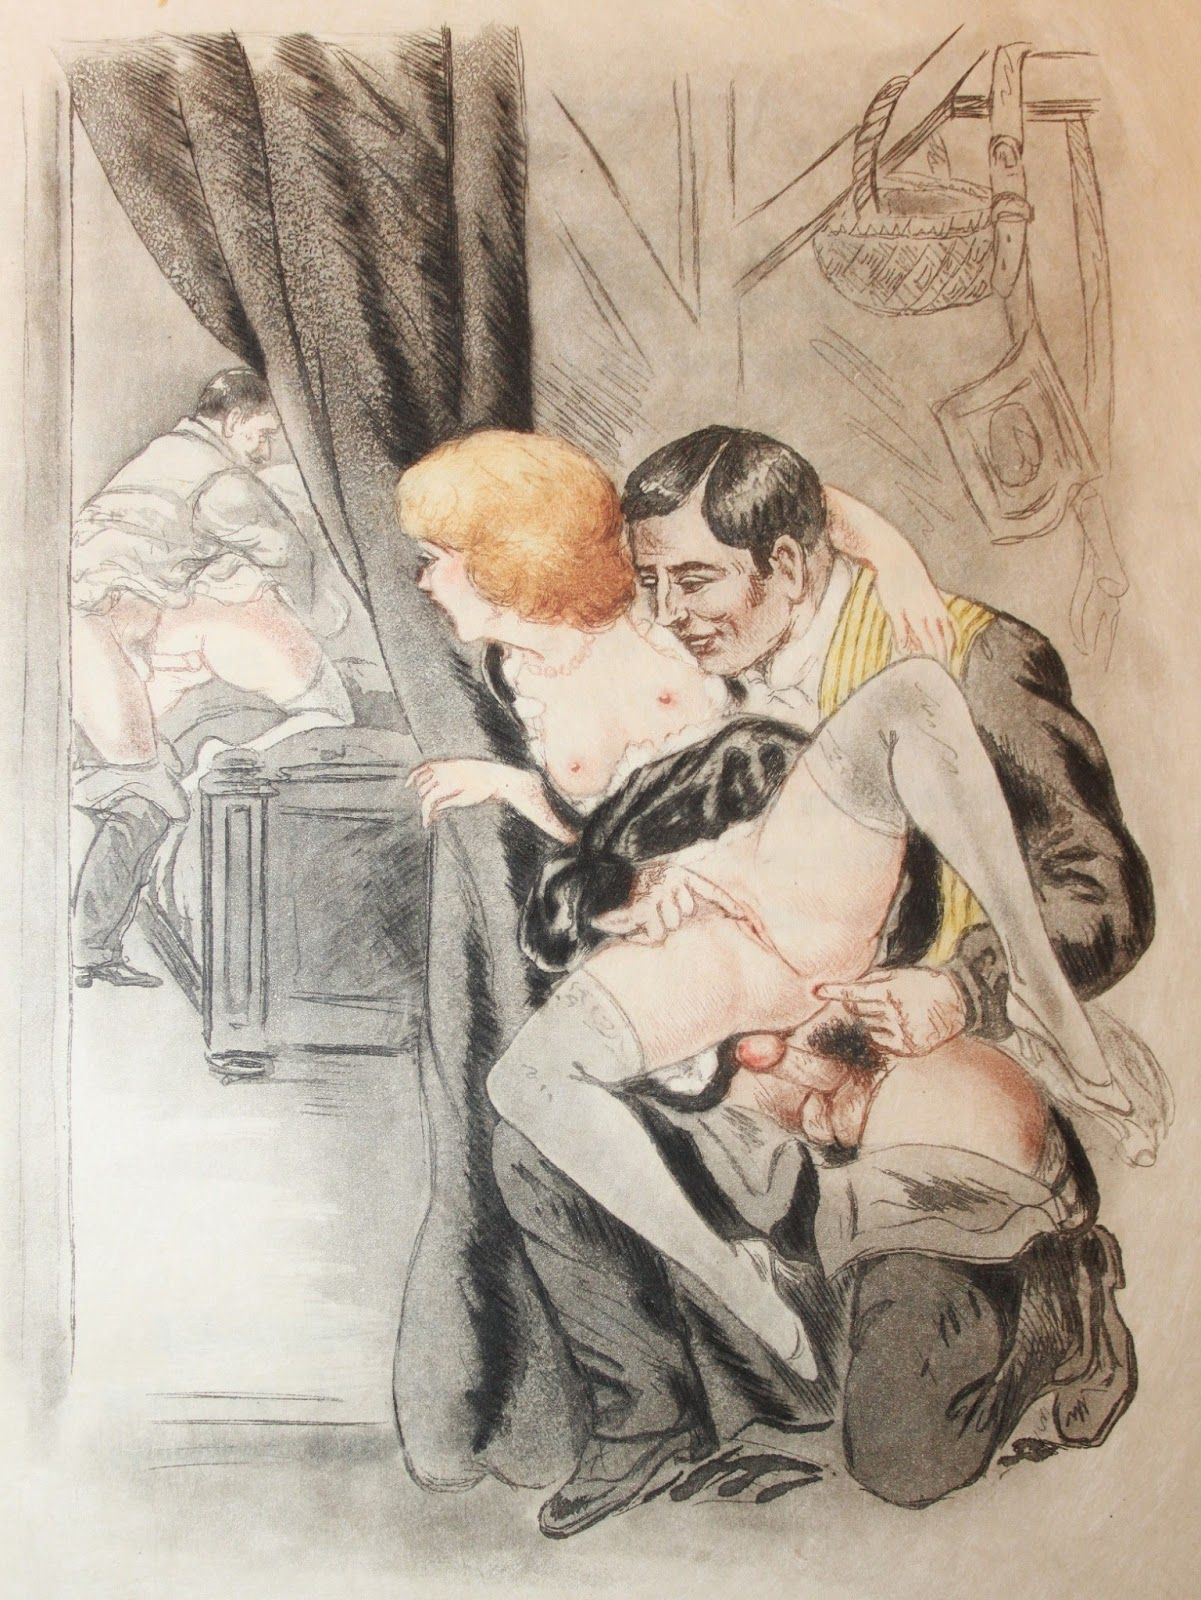 18th century themed mmf threesome - 3 1